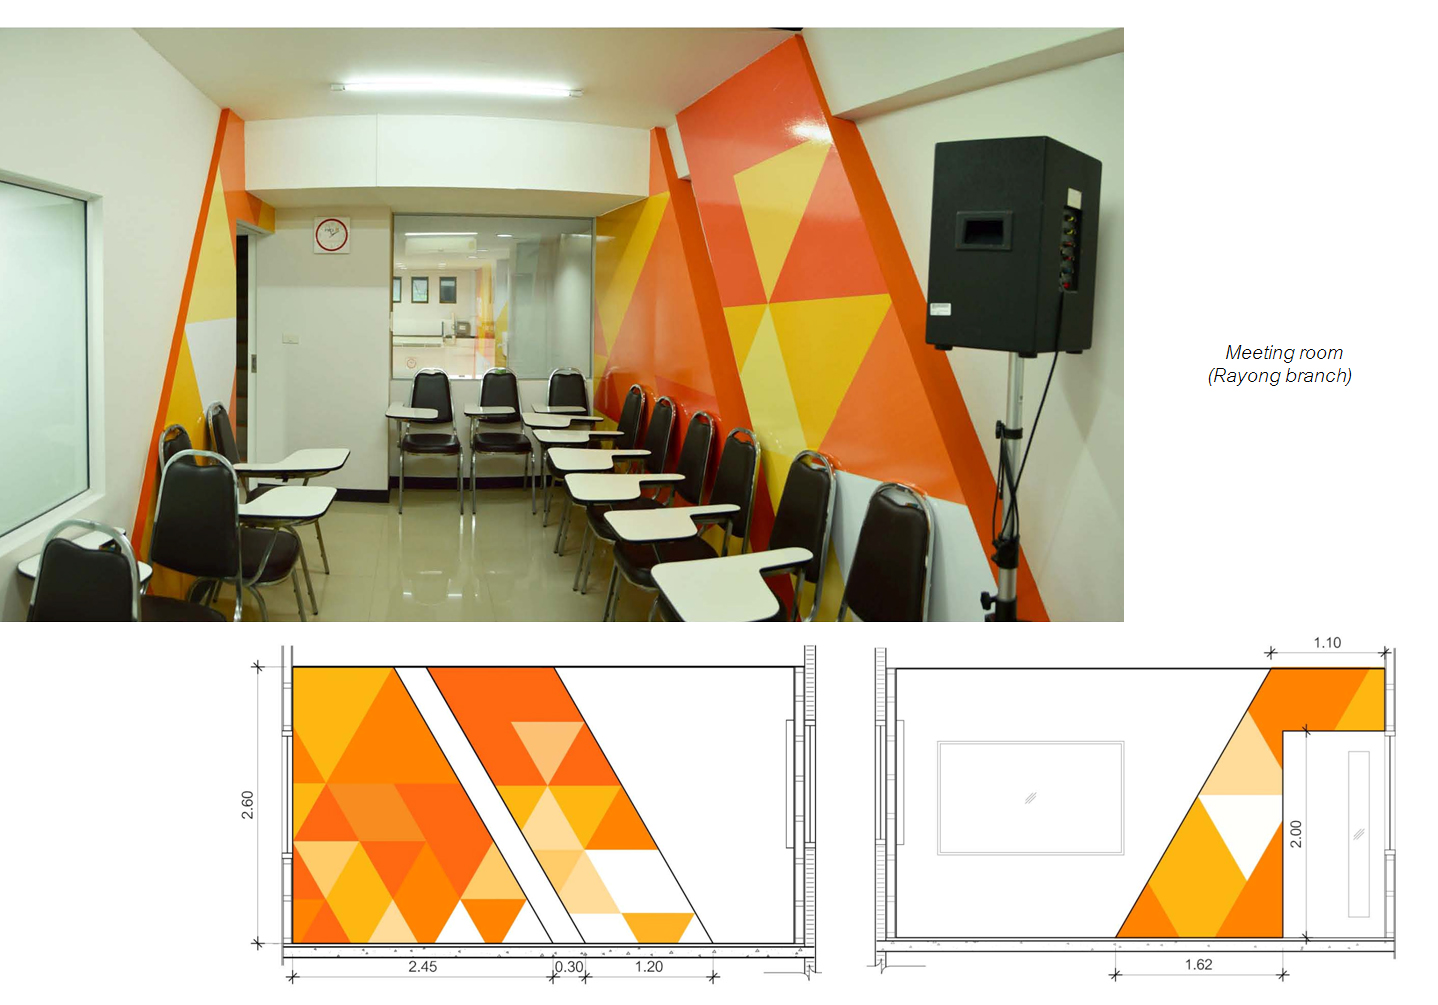 Meeting room, Graphic wall